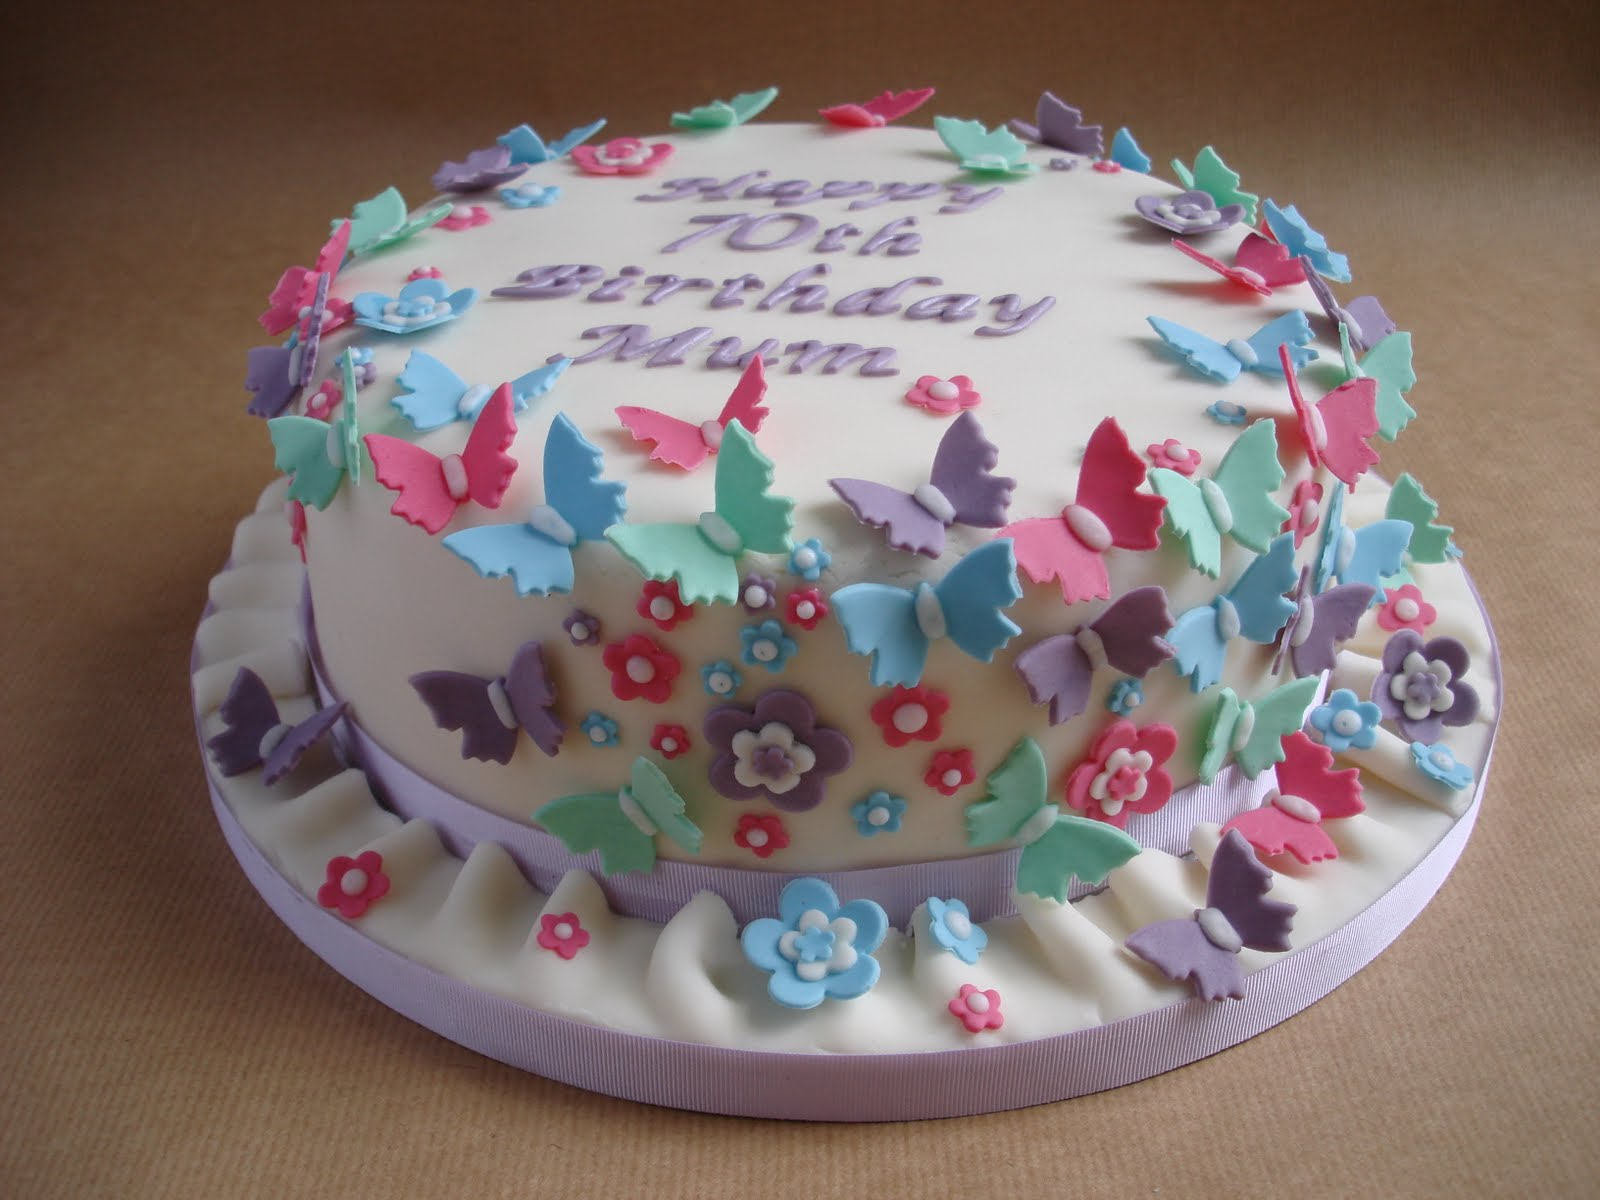 The 3rd Butterfly Cake | buy a cake